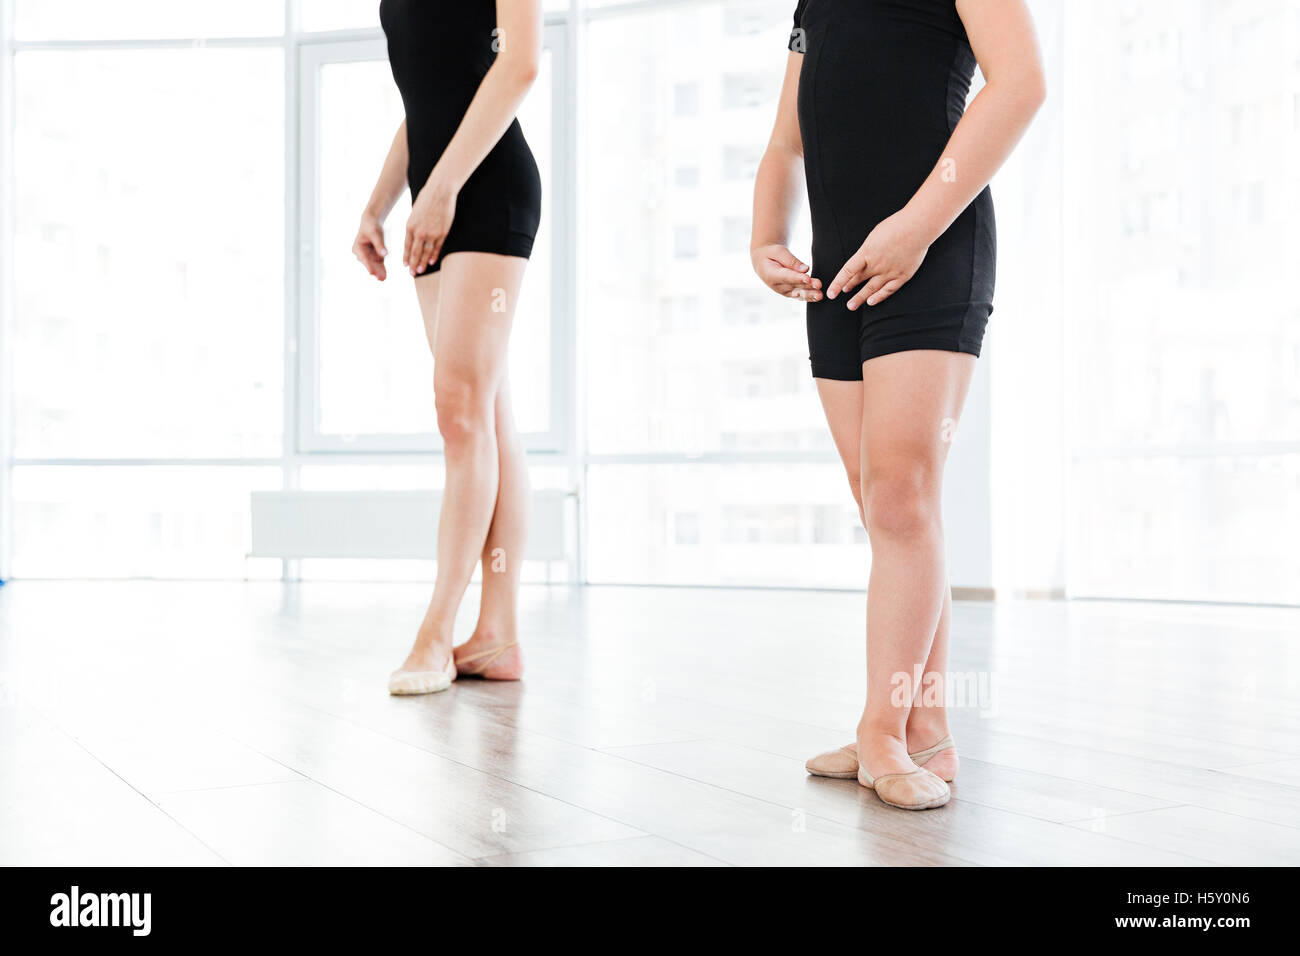 Cropped image of a young female ballet teacher and her little apprentice standing in the same ballet pose - Stock Image